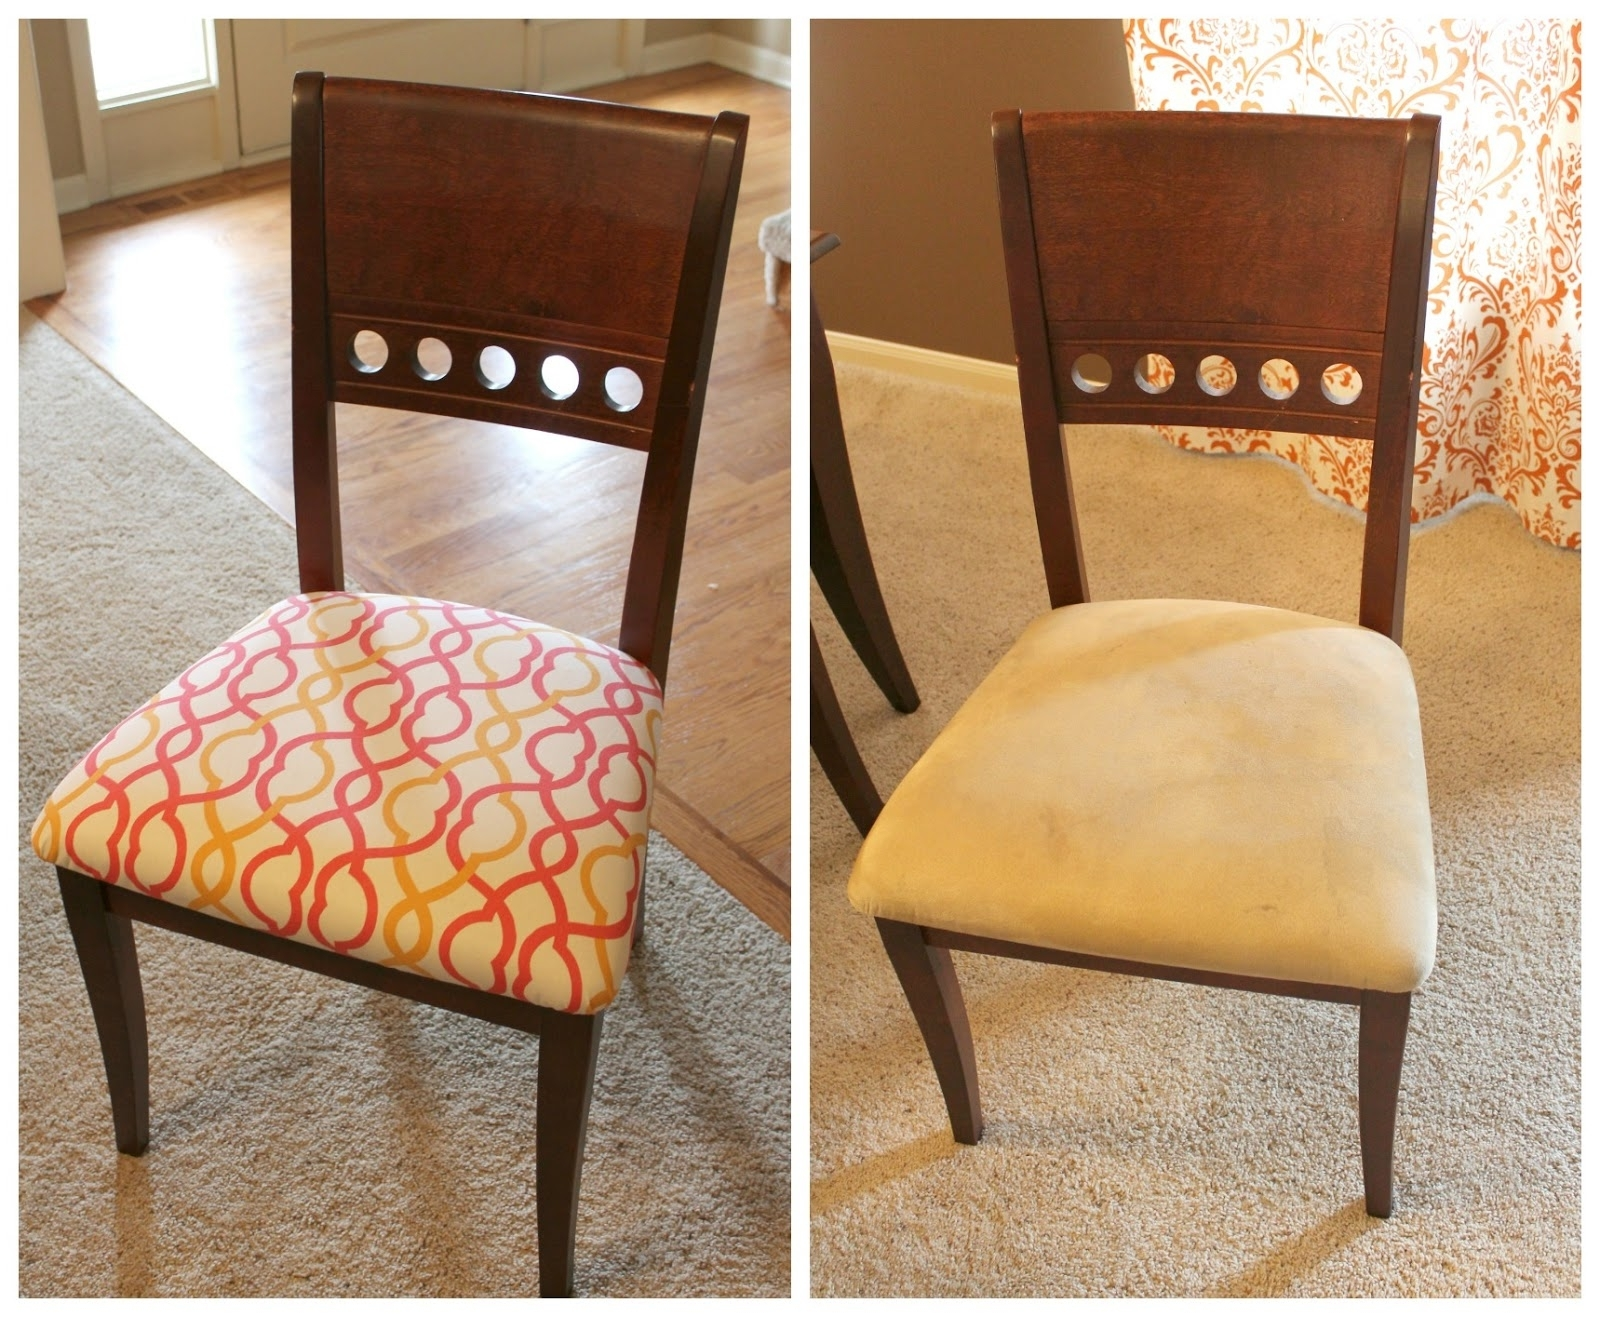 Current Fabric Dining Room Chairs Throughout Fabric To Cover Dining Room Chair Seats Patterned Dining Room Chairs (Gallery 11 of 25)